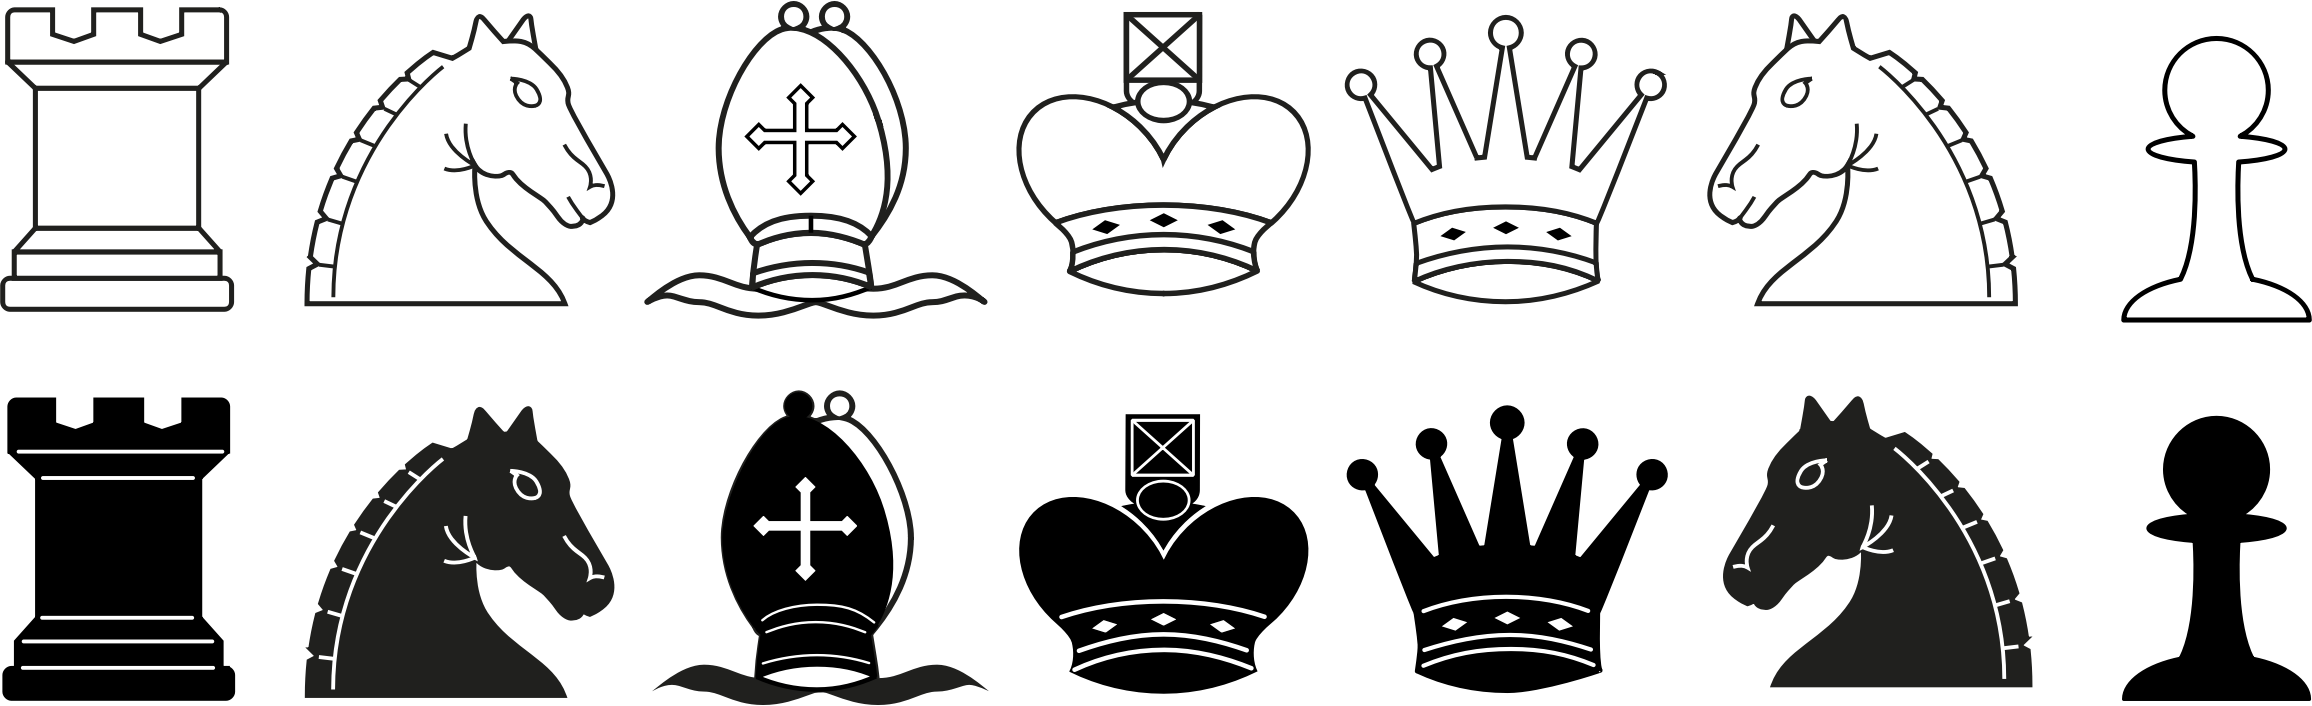 Pieces. Chess clipart line